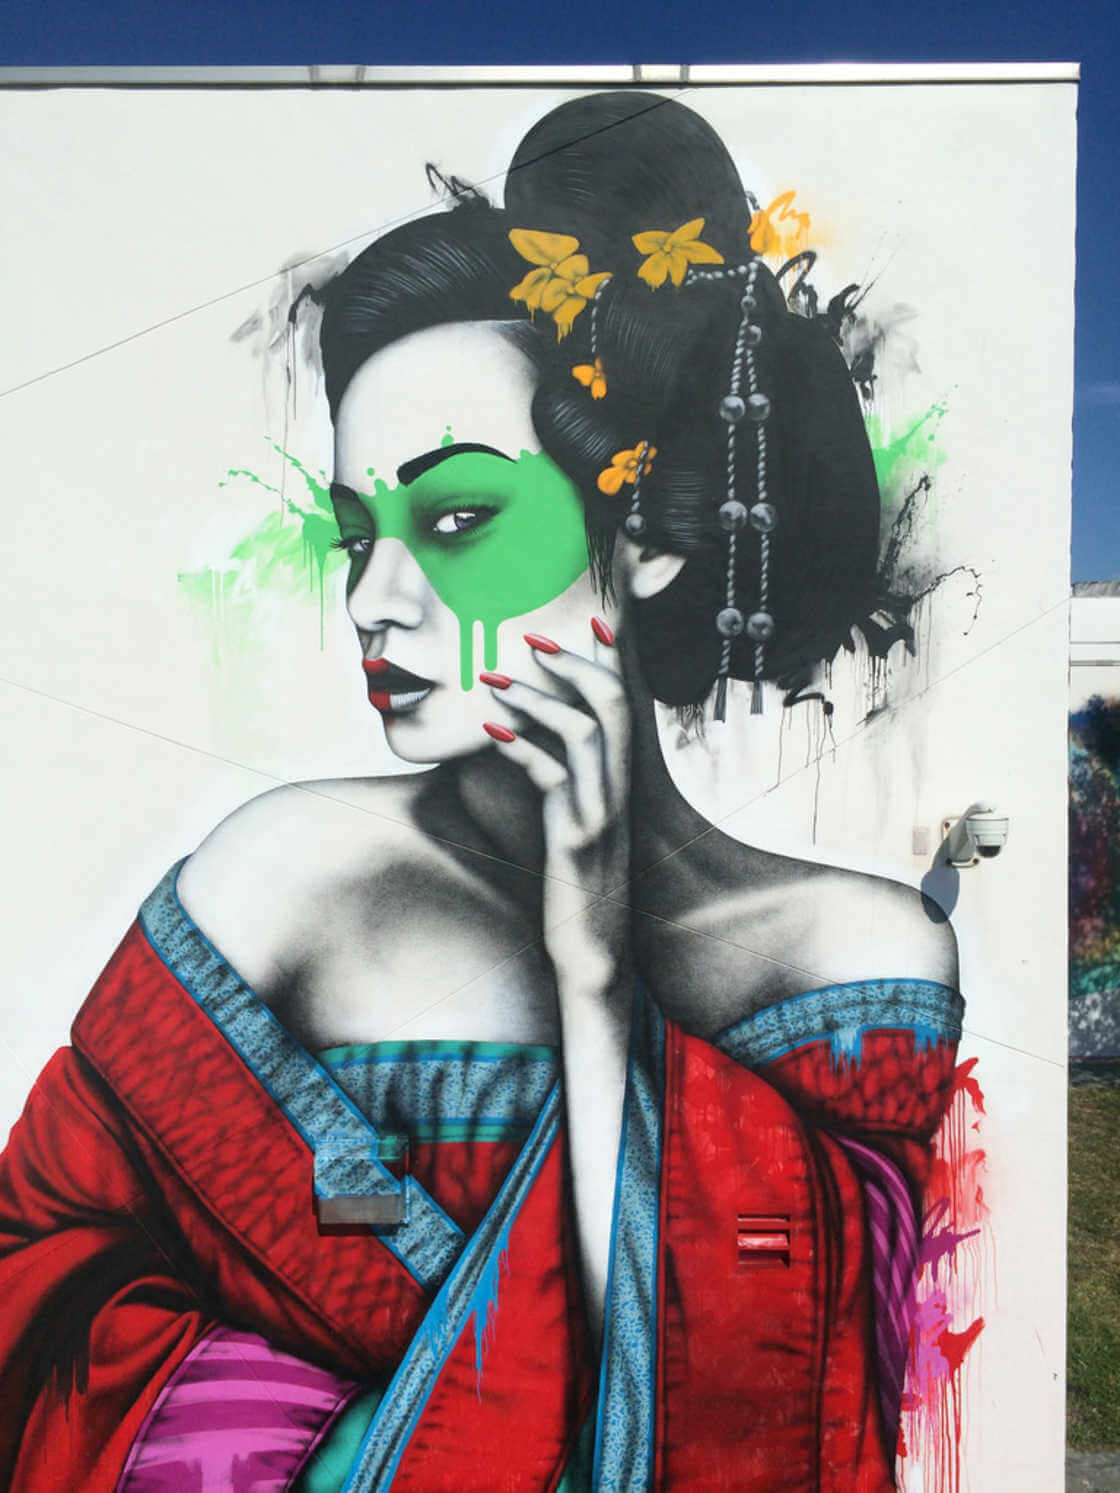 top-100-street-art-2017-best-of-murals-graffiti-fin-dac-04.jpg